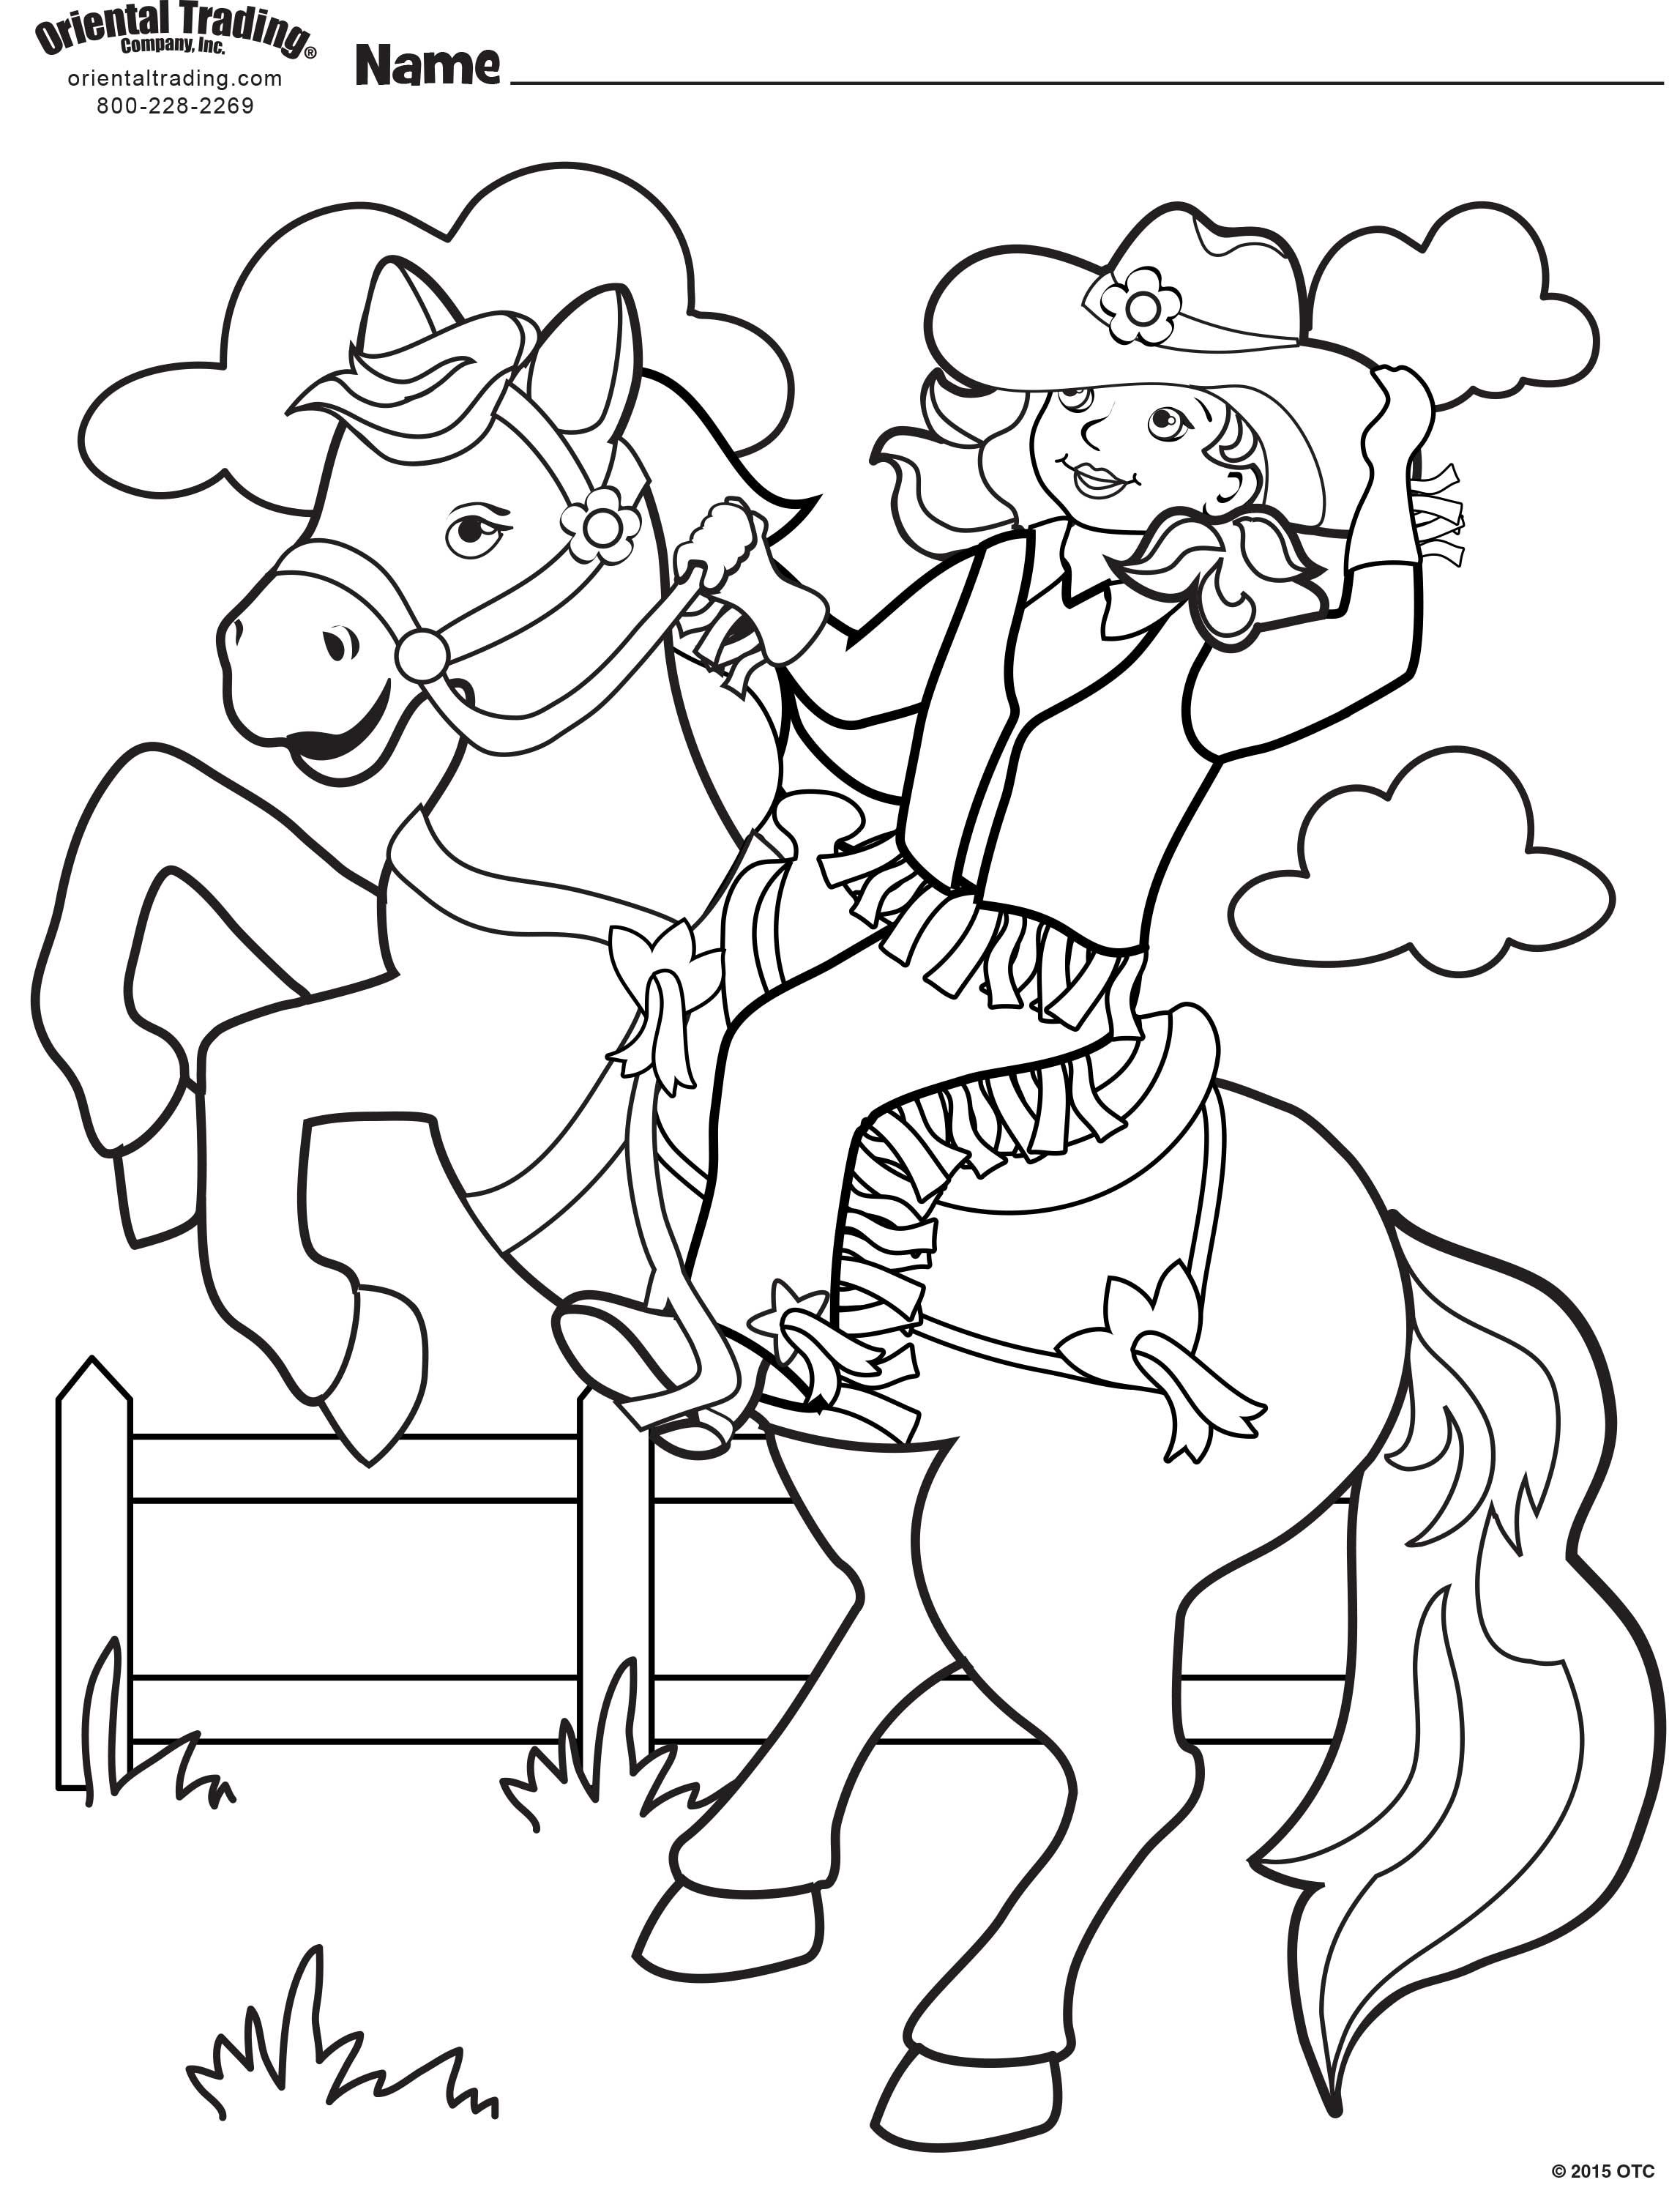 Cowgirl Coloring Page Coloring Pages Plastic Canvas Patterns Free Cowboy Applique